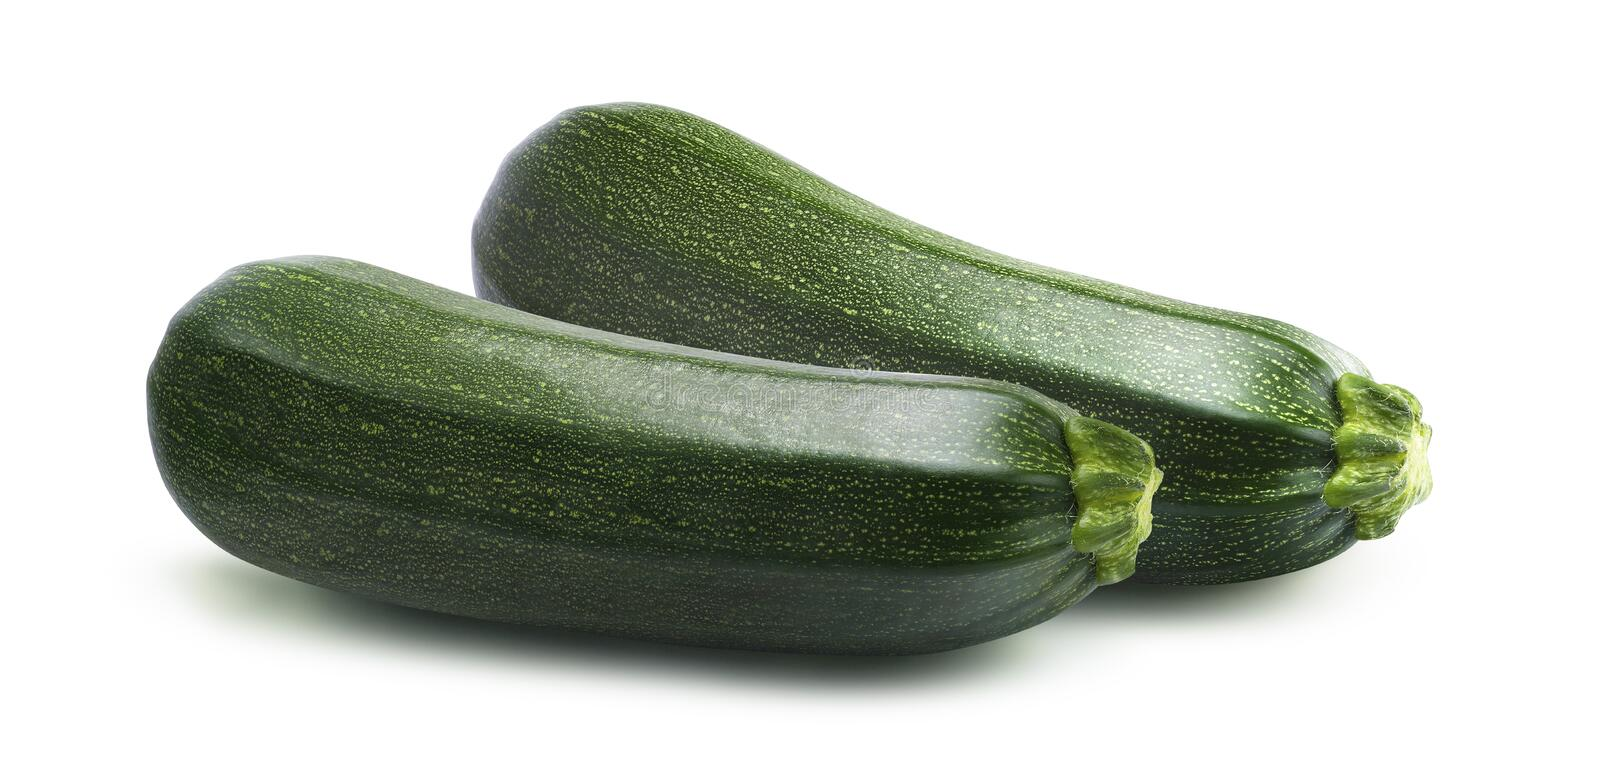 Parallel zucchini isolated on white background. As package design element royalty free stock photography